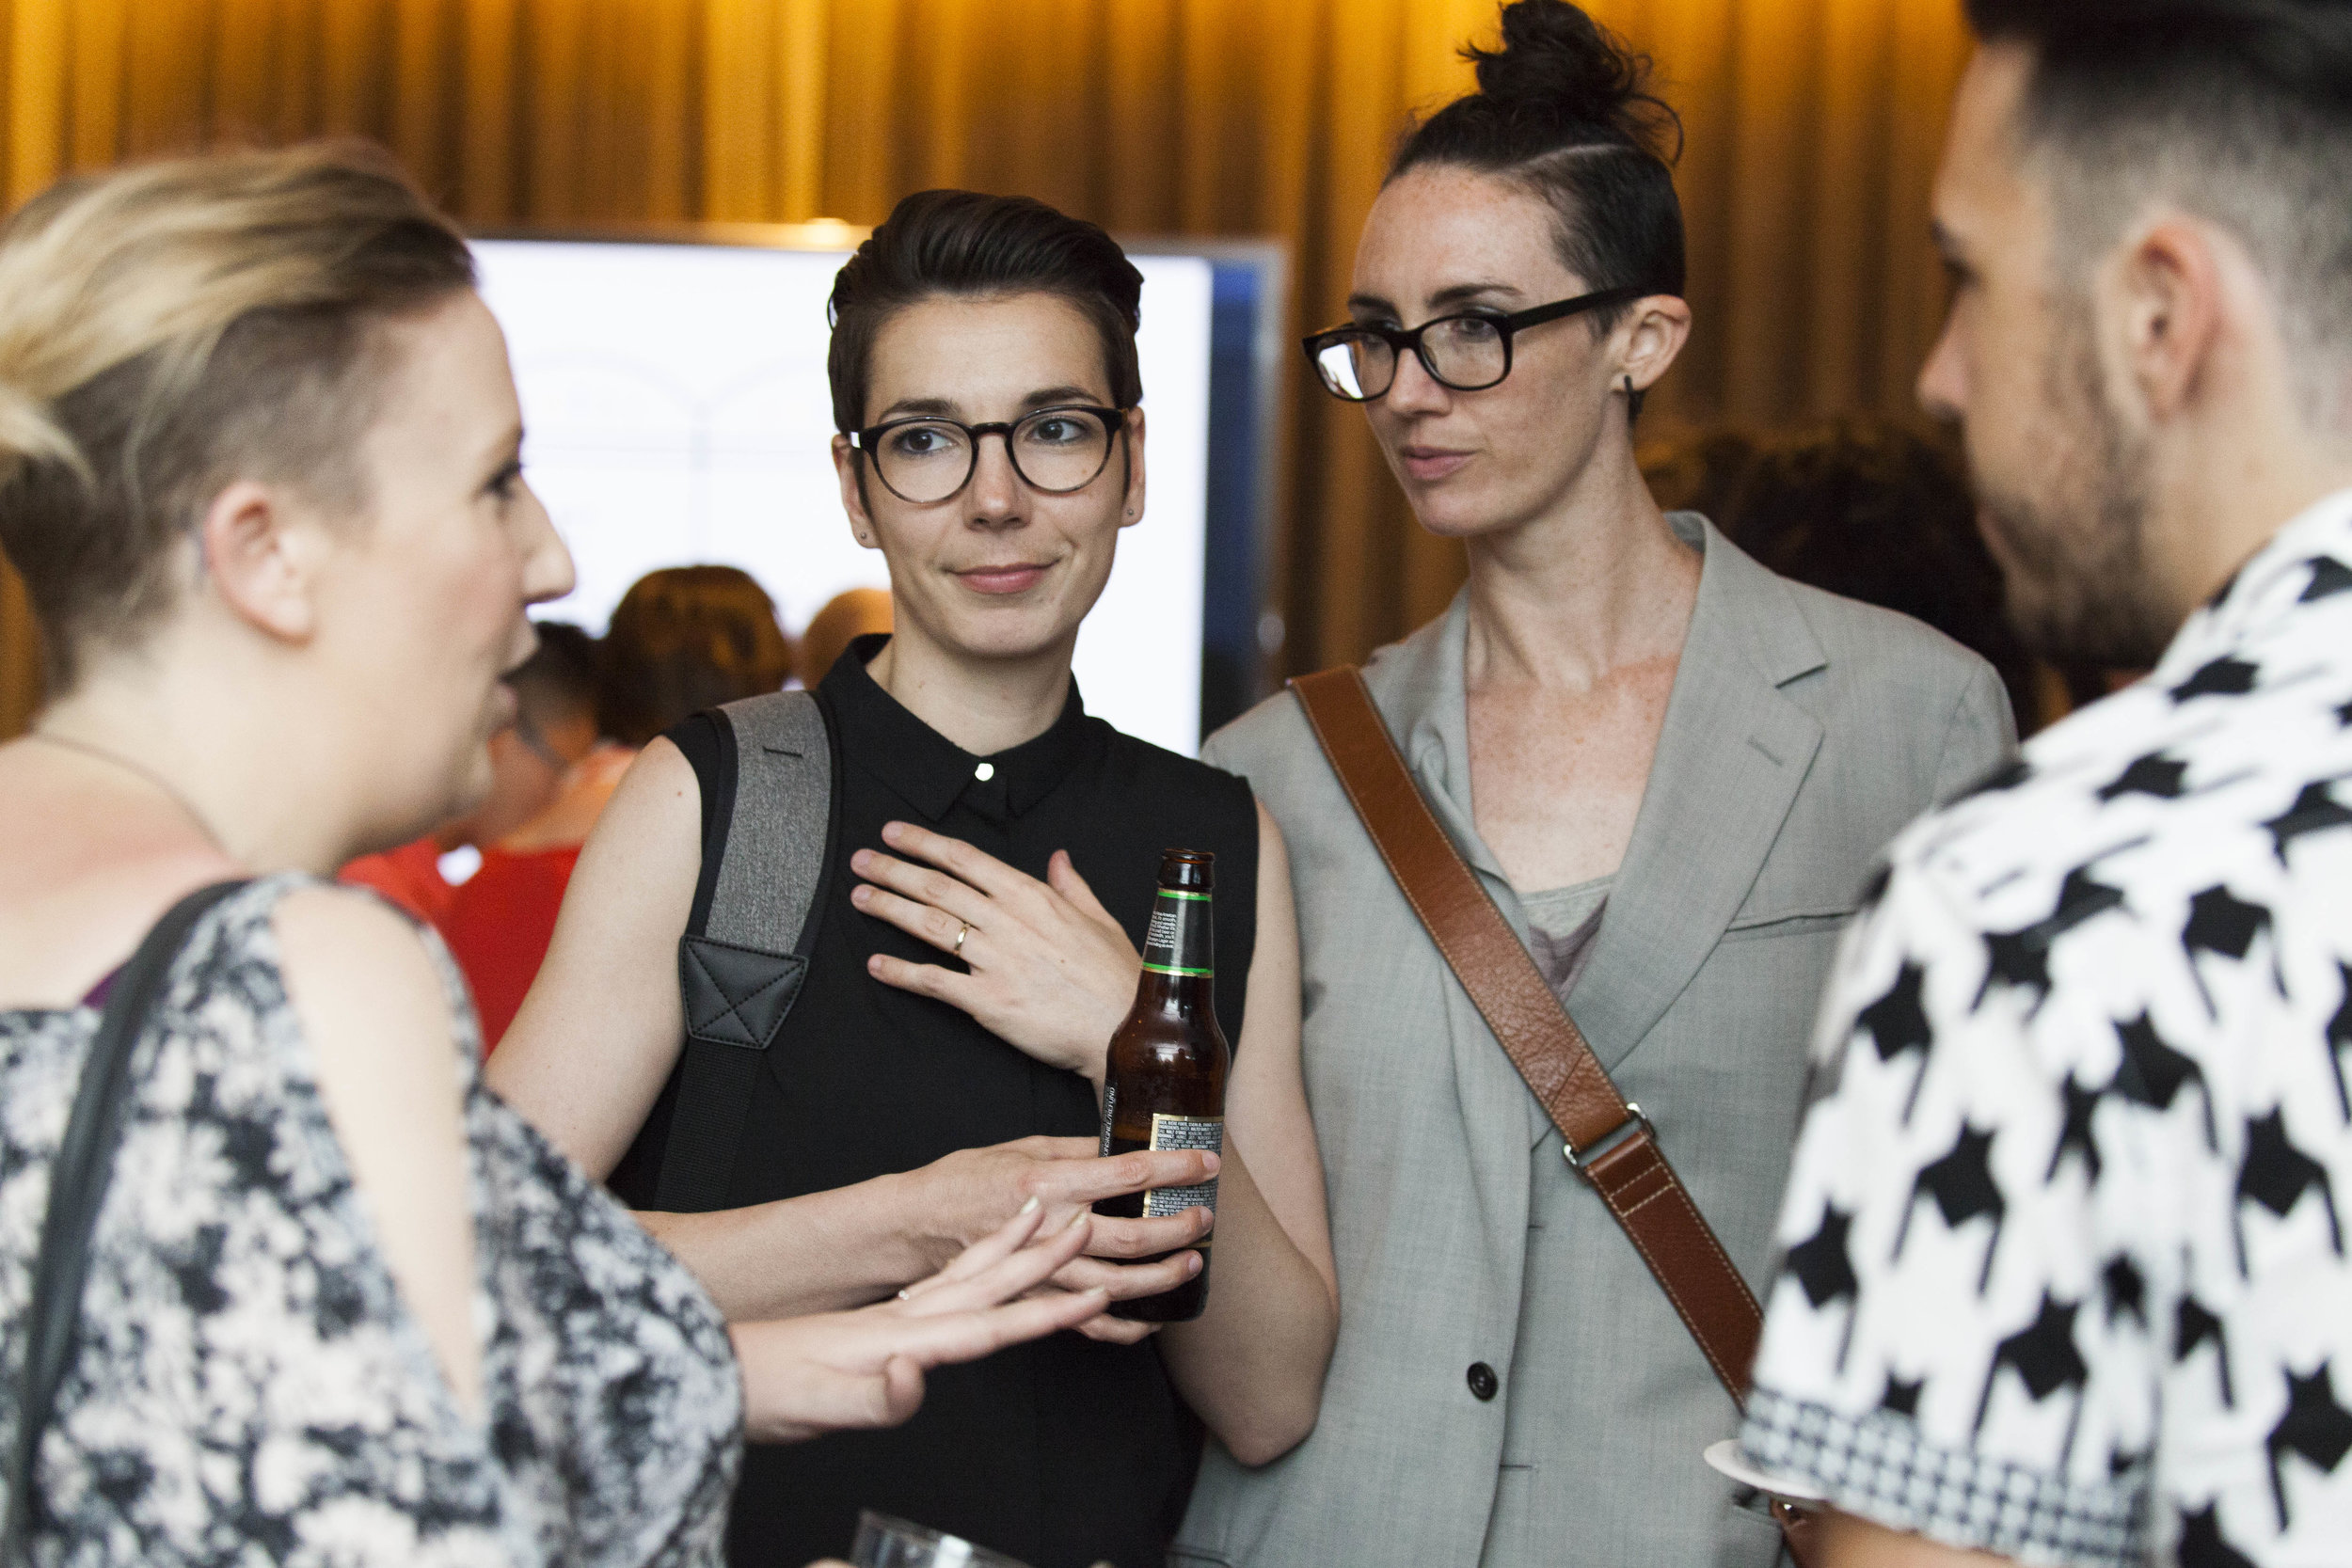 2016_06_27_The_Generations_Project_HBO_Pride_Event_006.JPG